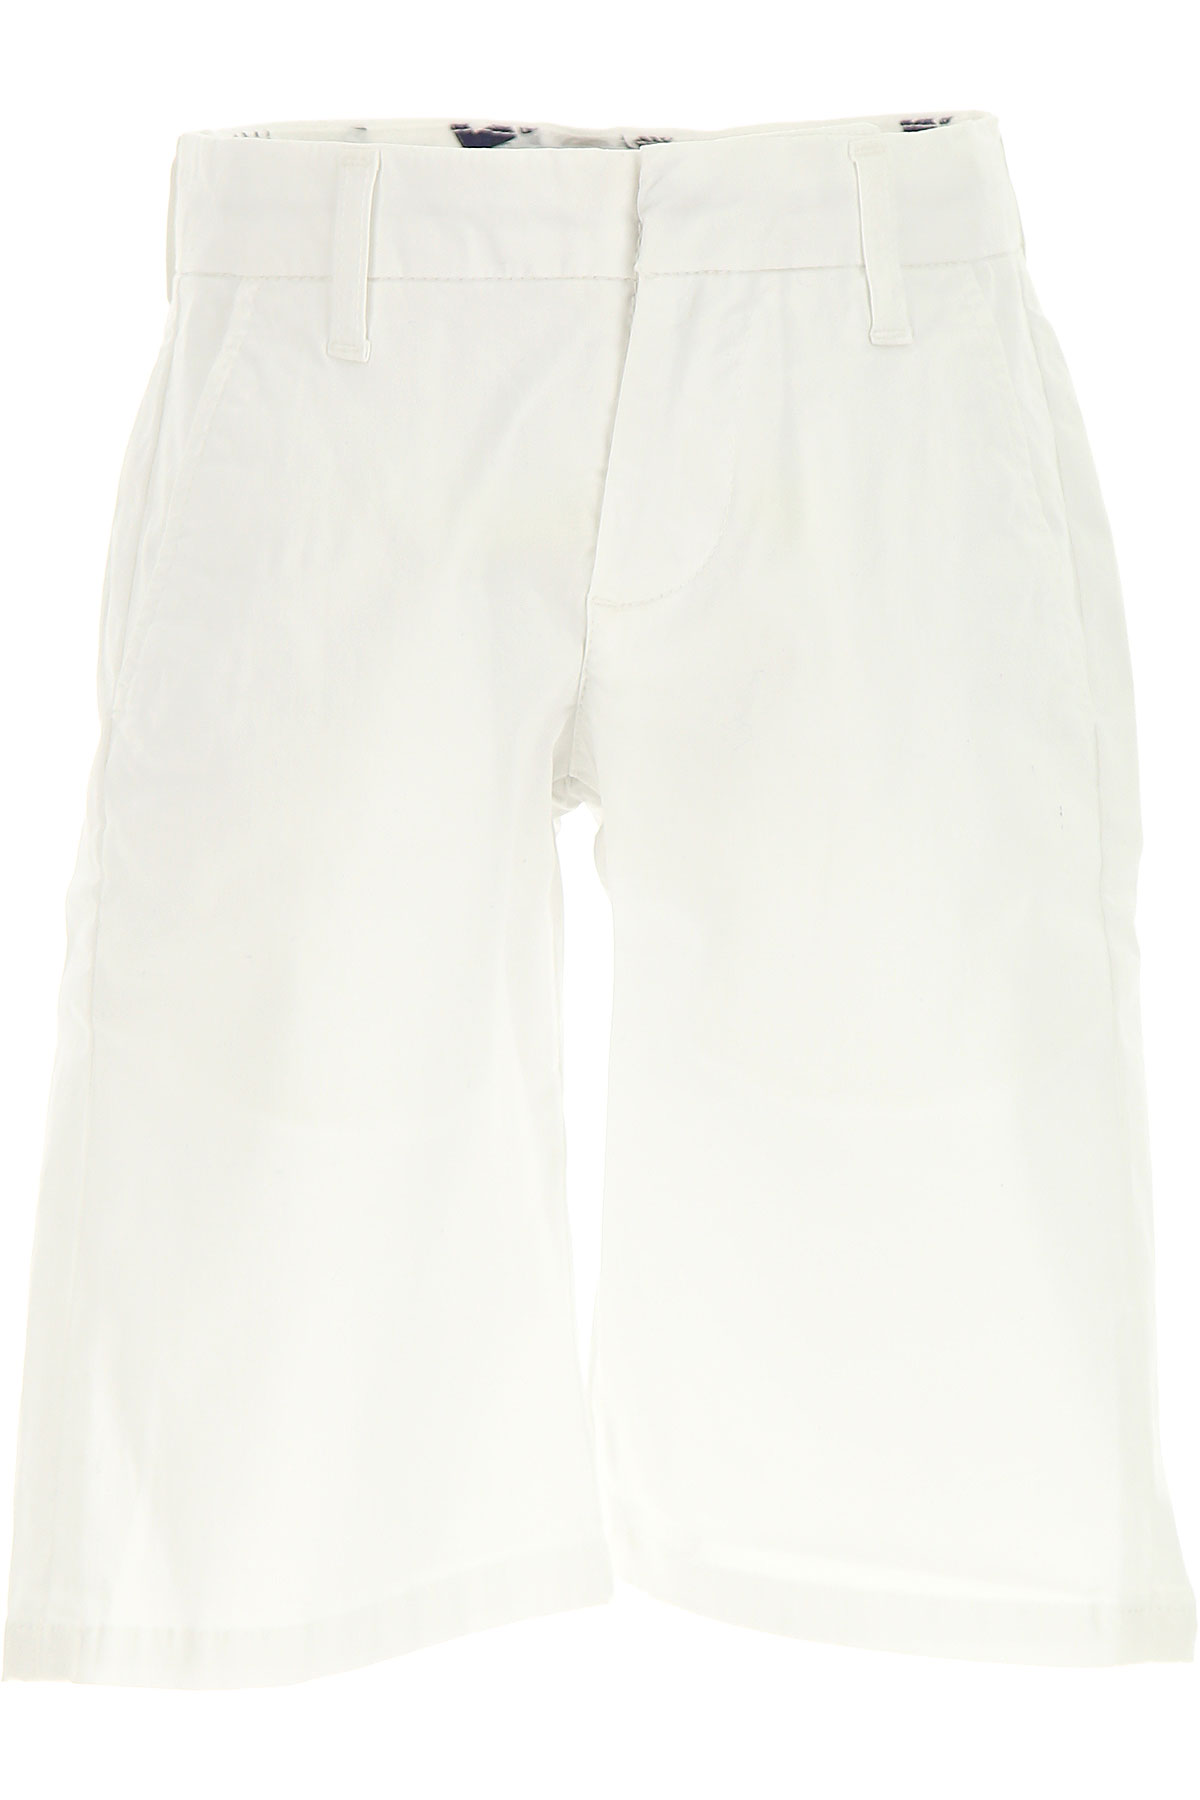 MSGM Kids Shorts for Boys On Sale in Outlet, White, Cotton, 2017, 6Y 8Y